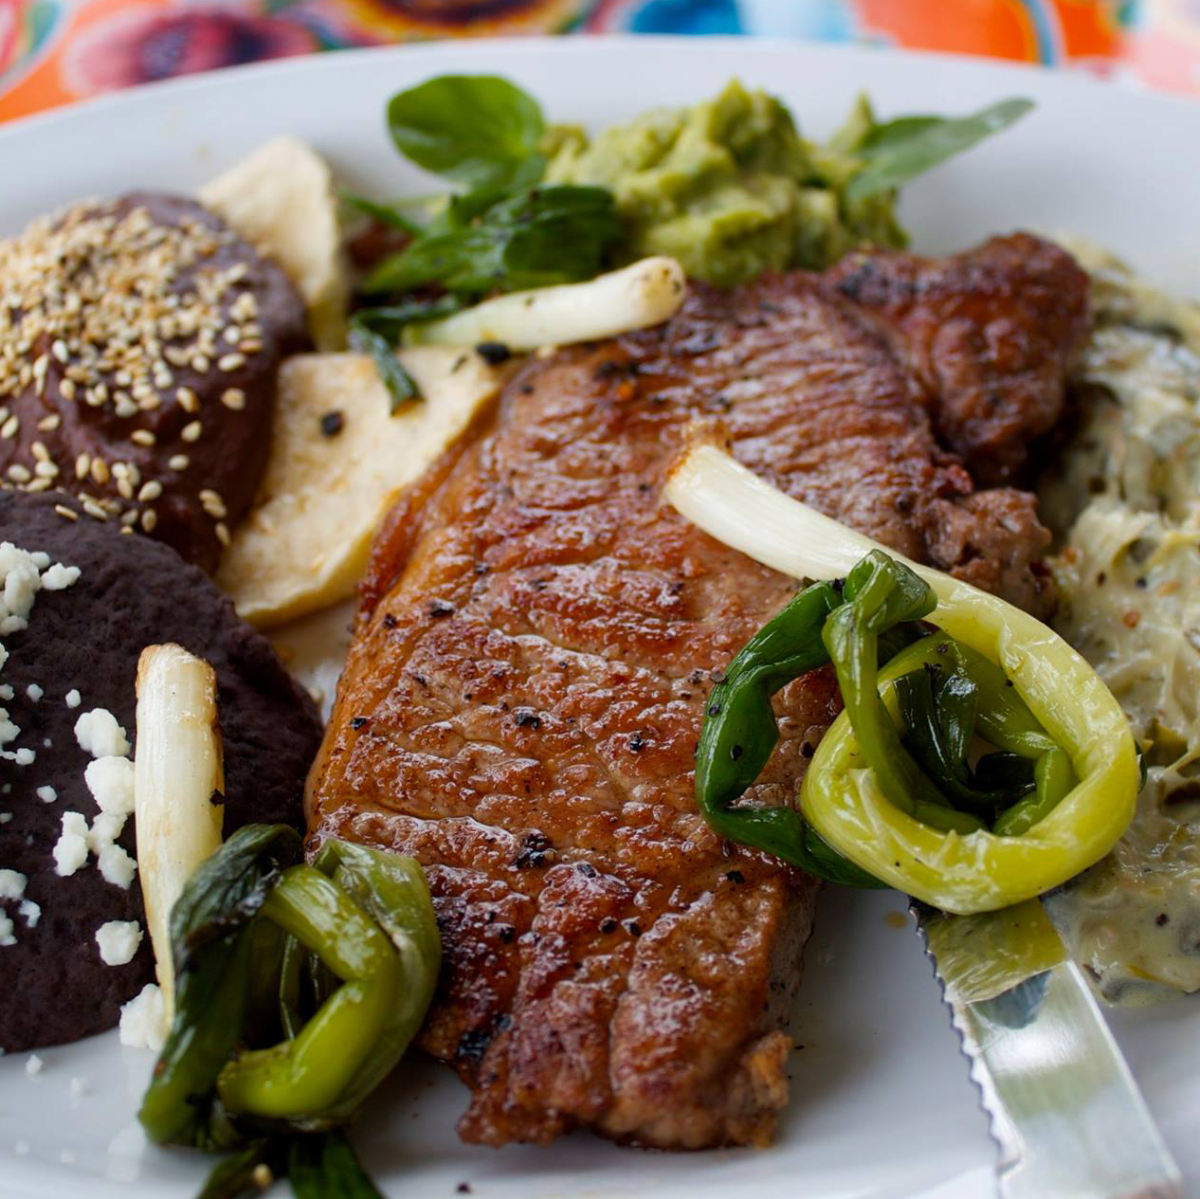 Licha's Cantina tampico steak